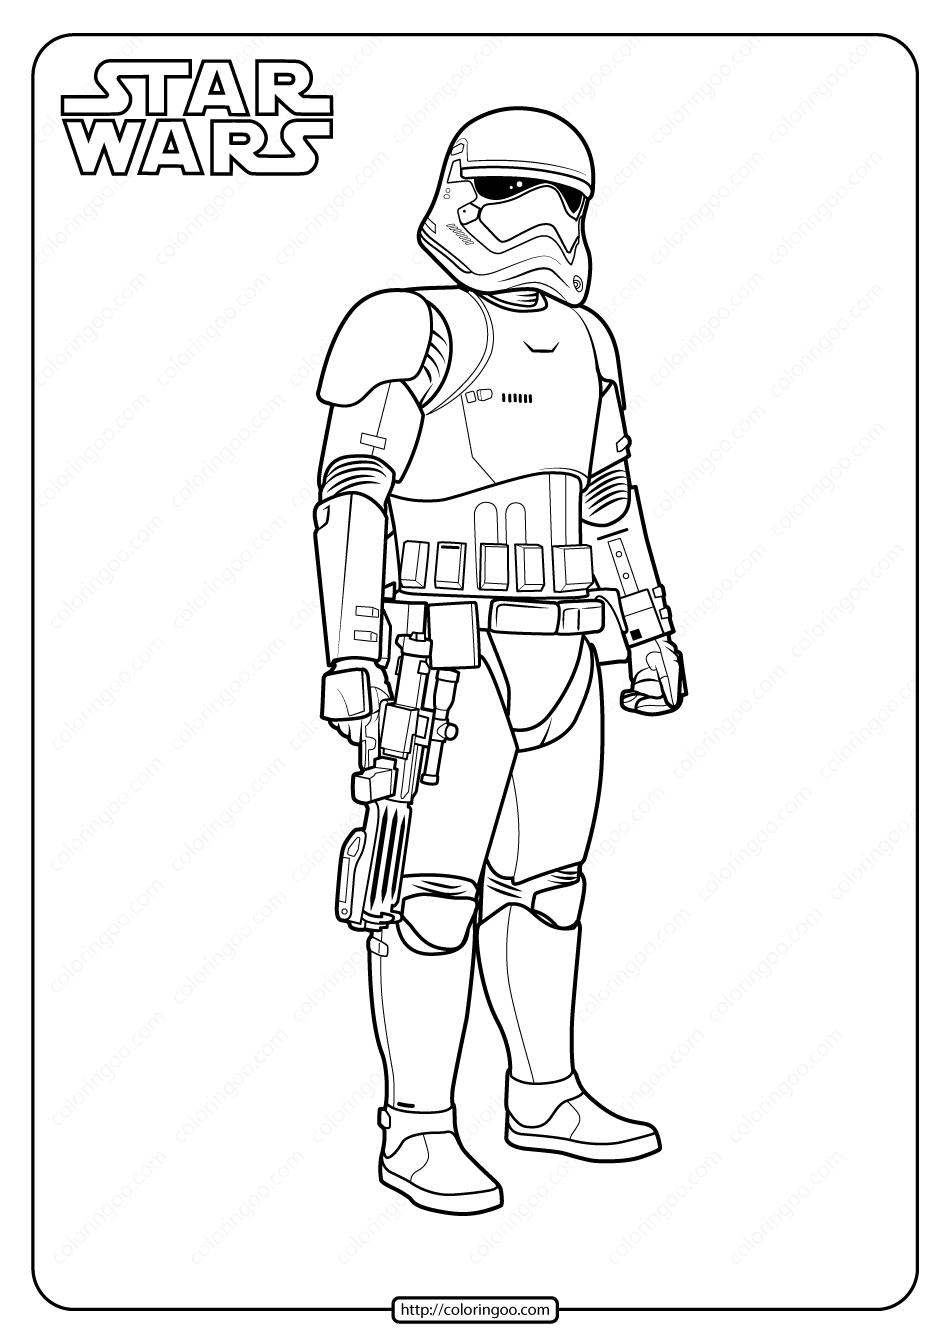 Printable Star Wars Stormtrooper Coloring Pages Star Wars Coloring Sheet Star Wars Coloring Book Star Coloring Pages